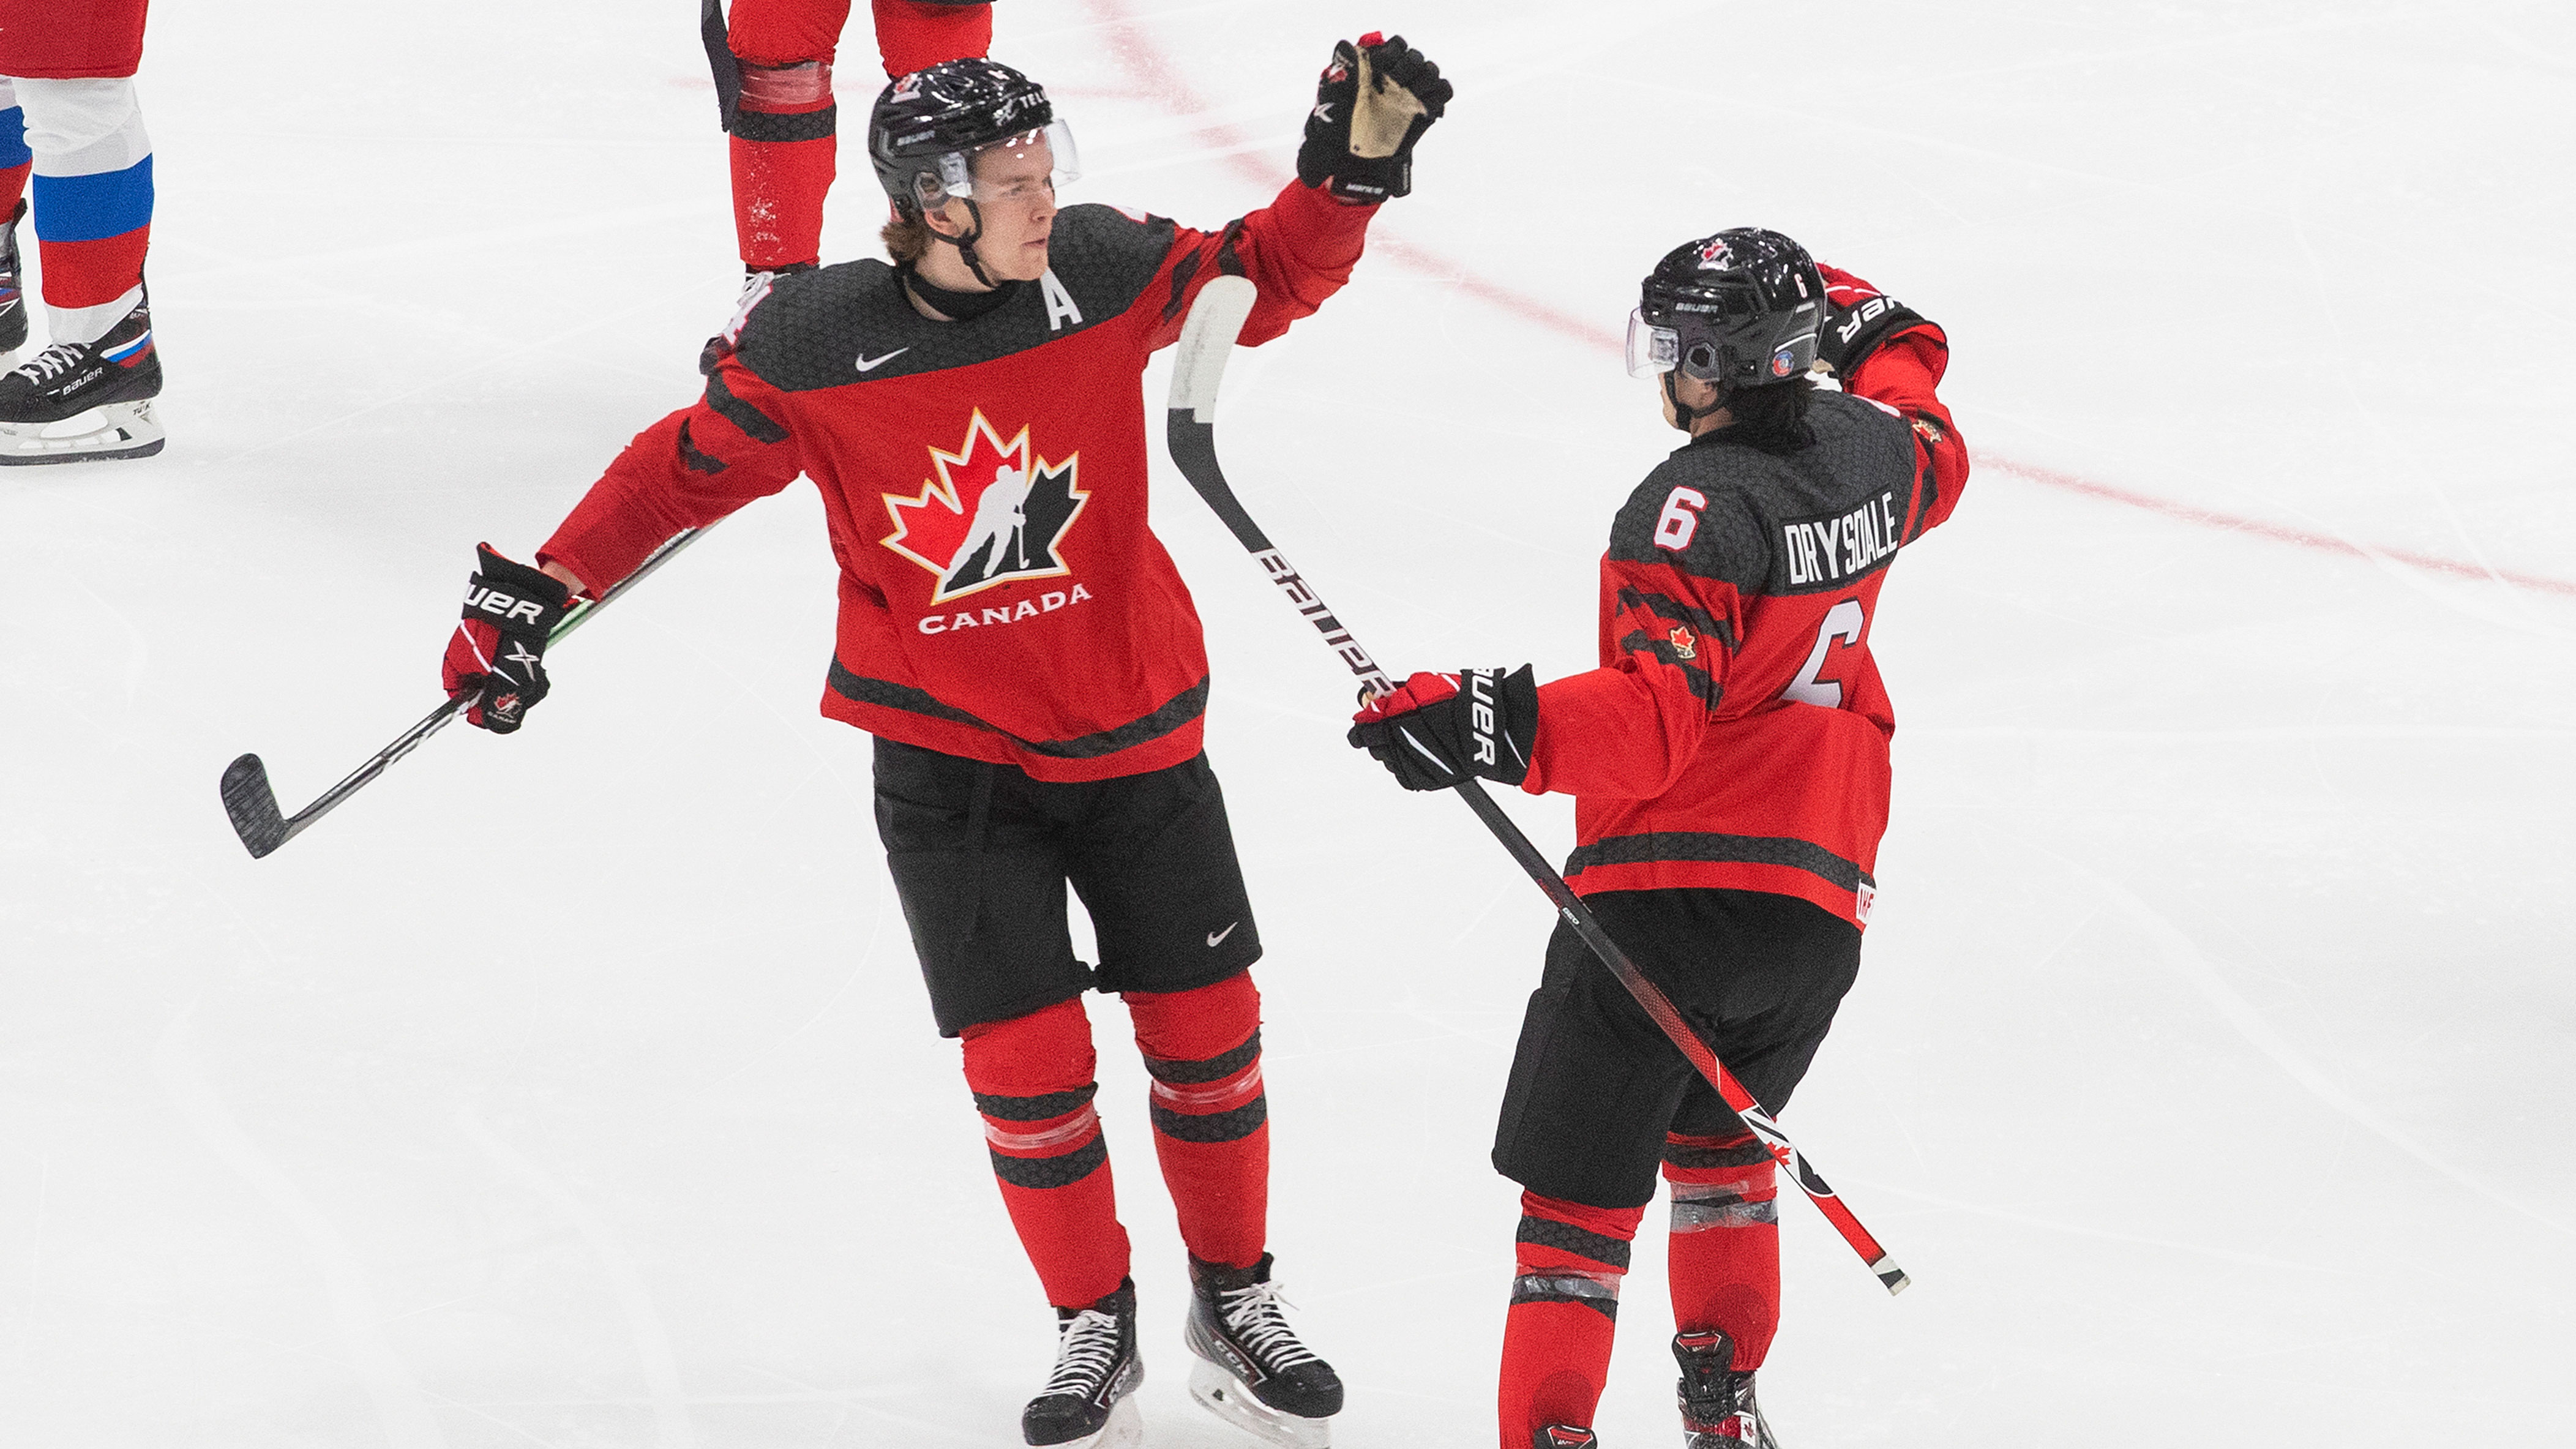 Drysdale Scores Lone Goal Dach Hurt As Canada Defeats Russia At World Juniors Pre Competition Game Tsn Ca